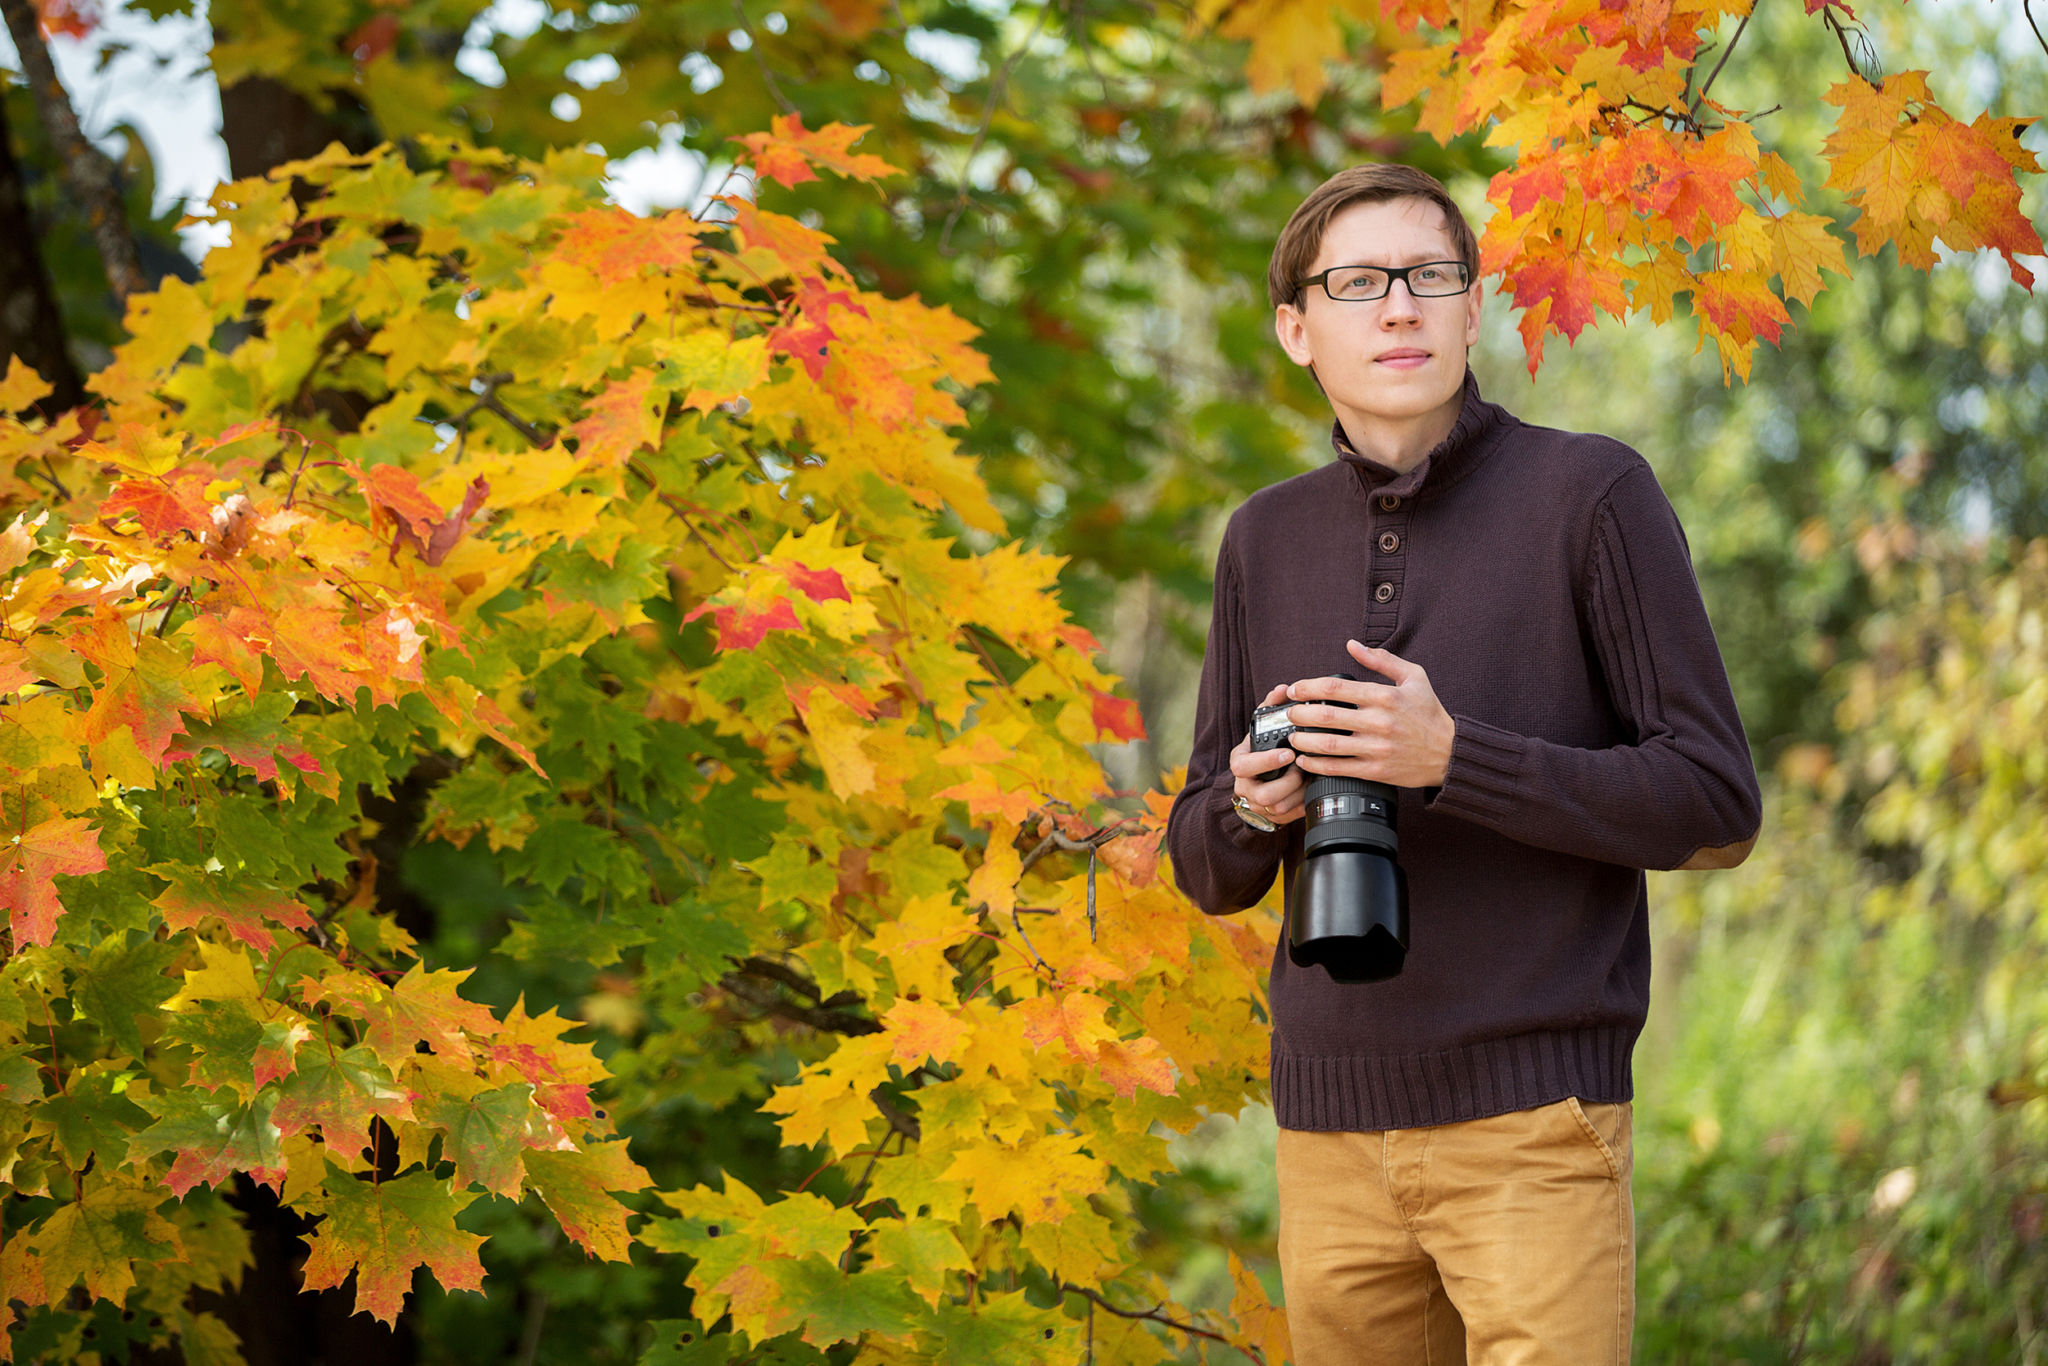 Man in autumn, holding a camera